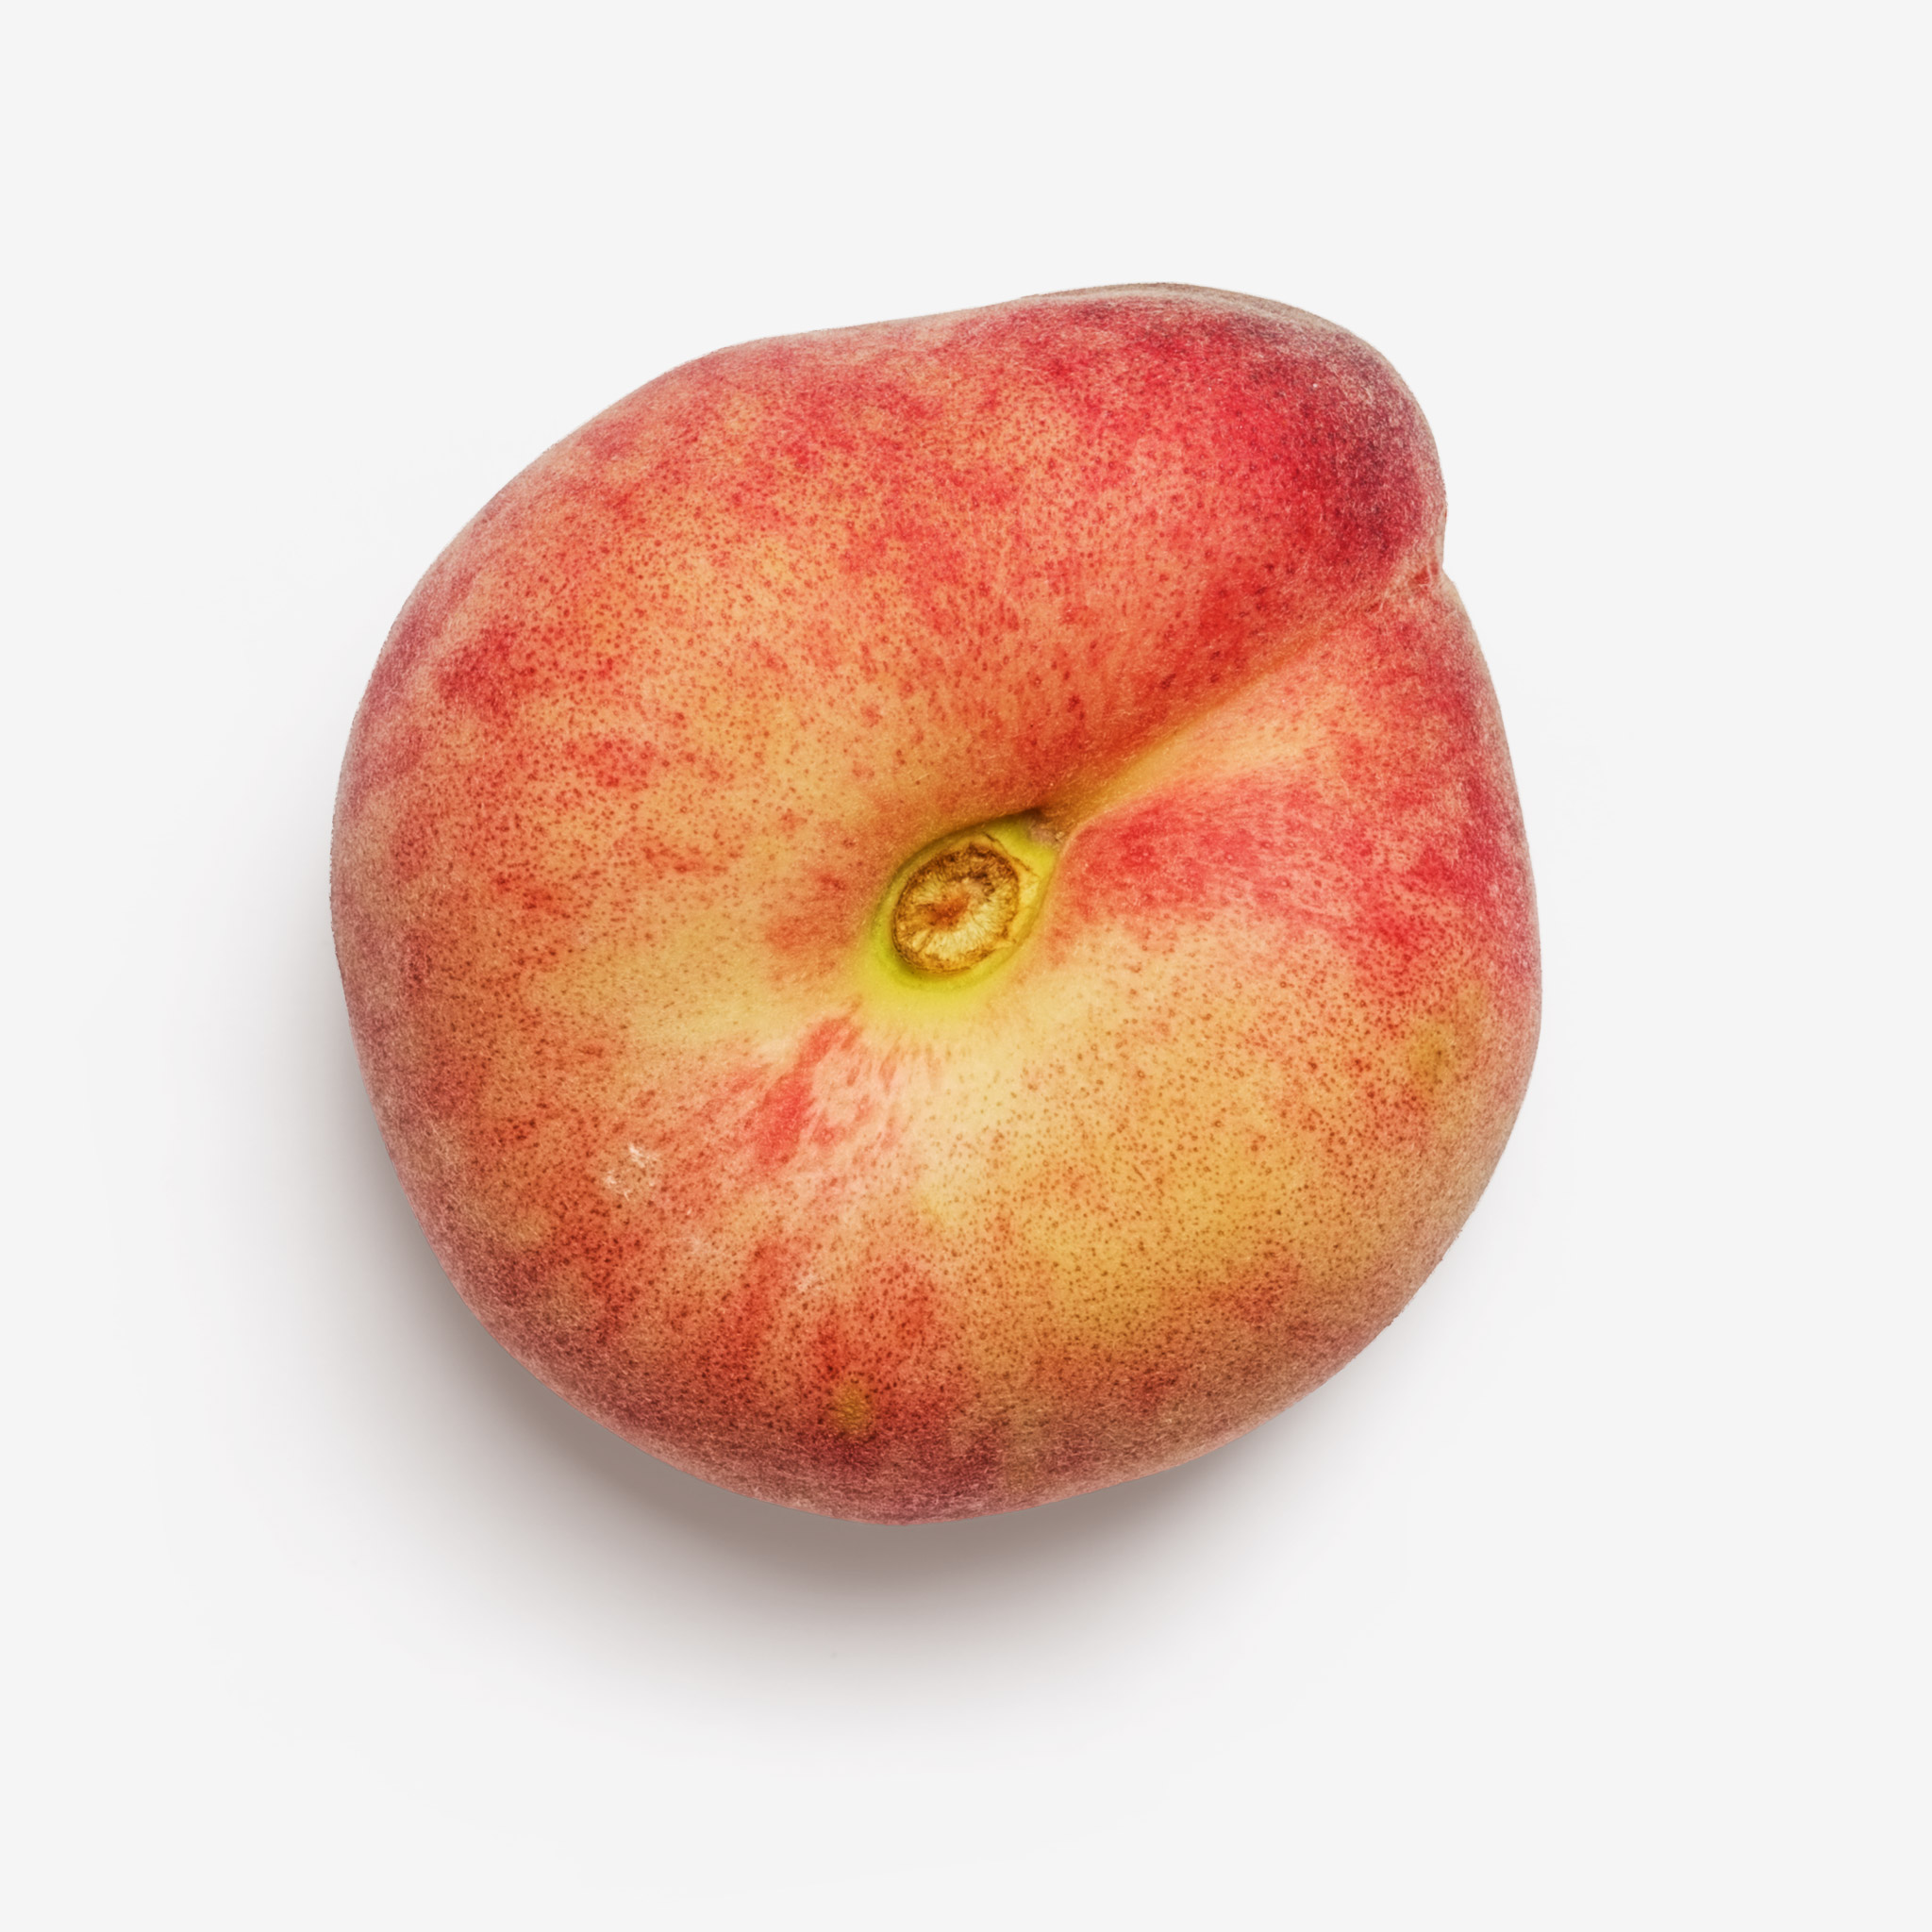 Nectarine PSD isolated image